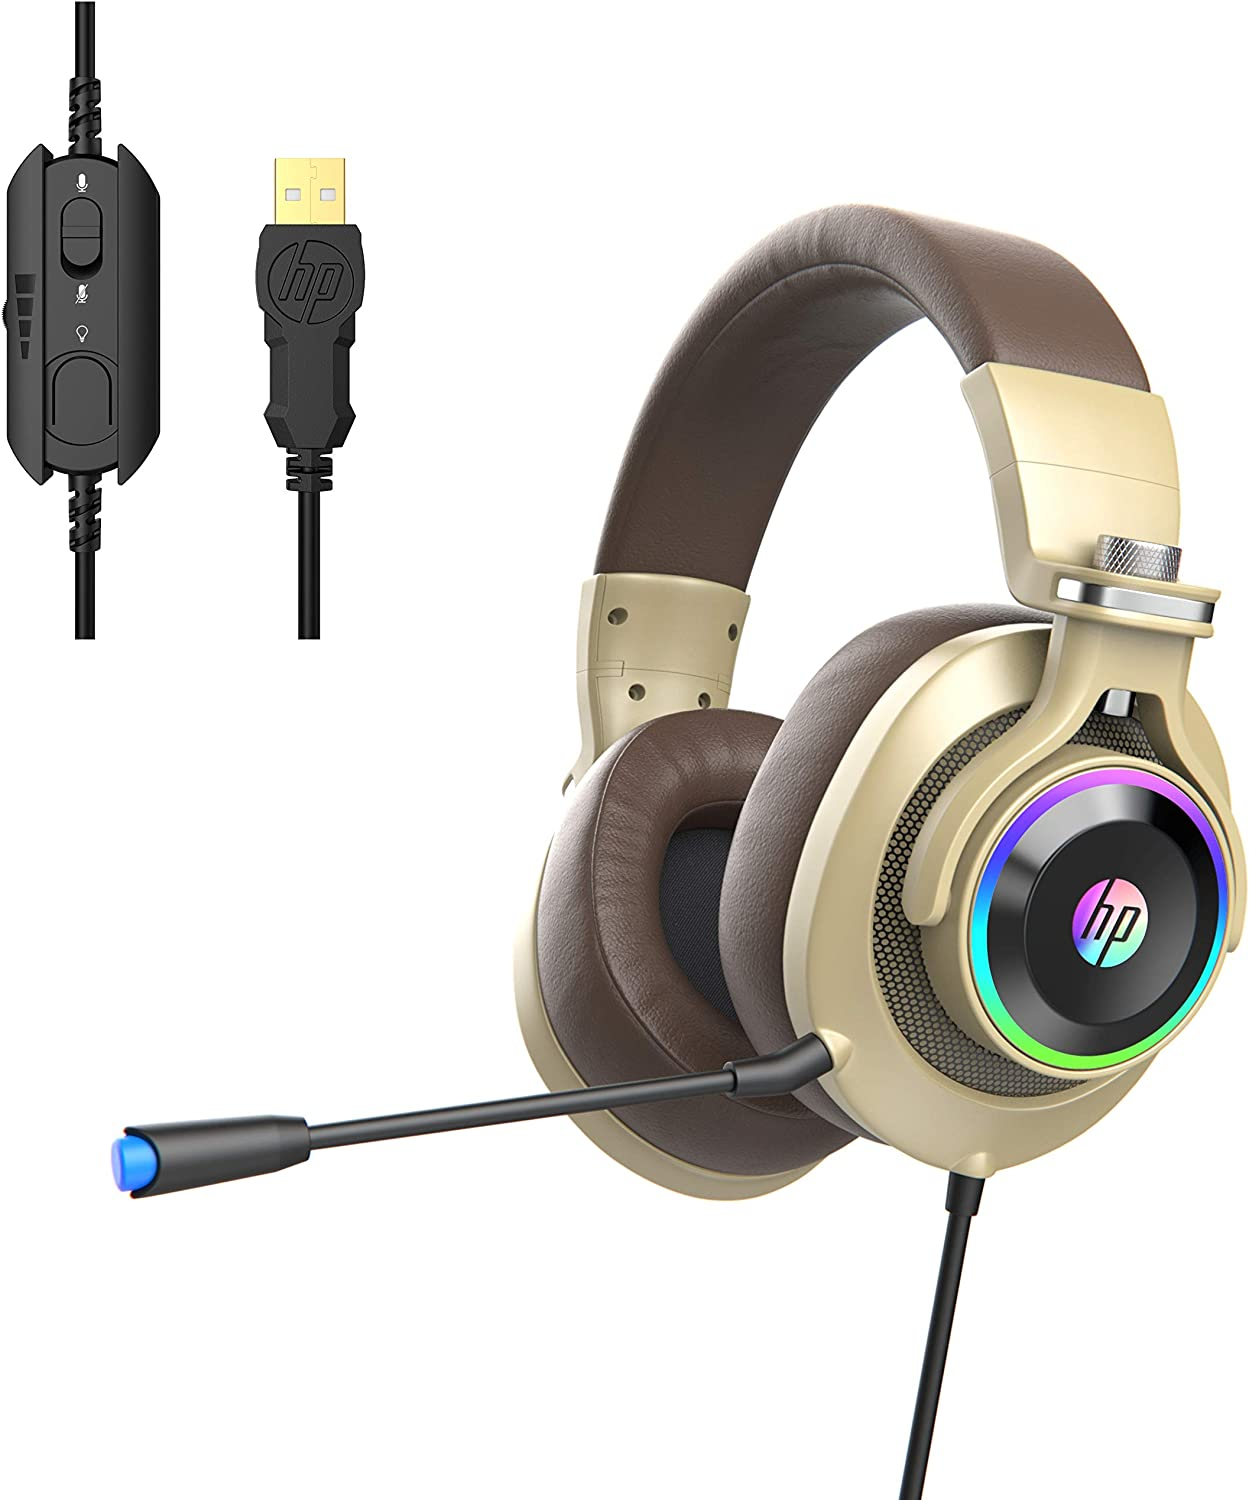 HP Wired PC Gaming Headphones with 7.1 Surround Sound, RGB LED Lighting, Noise isolating Over Ear Gaming Headset with Adjustable Mic, for PC, Mac, Laptop - Gold